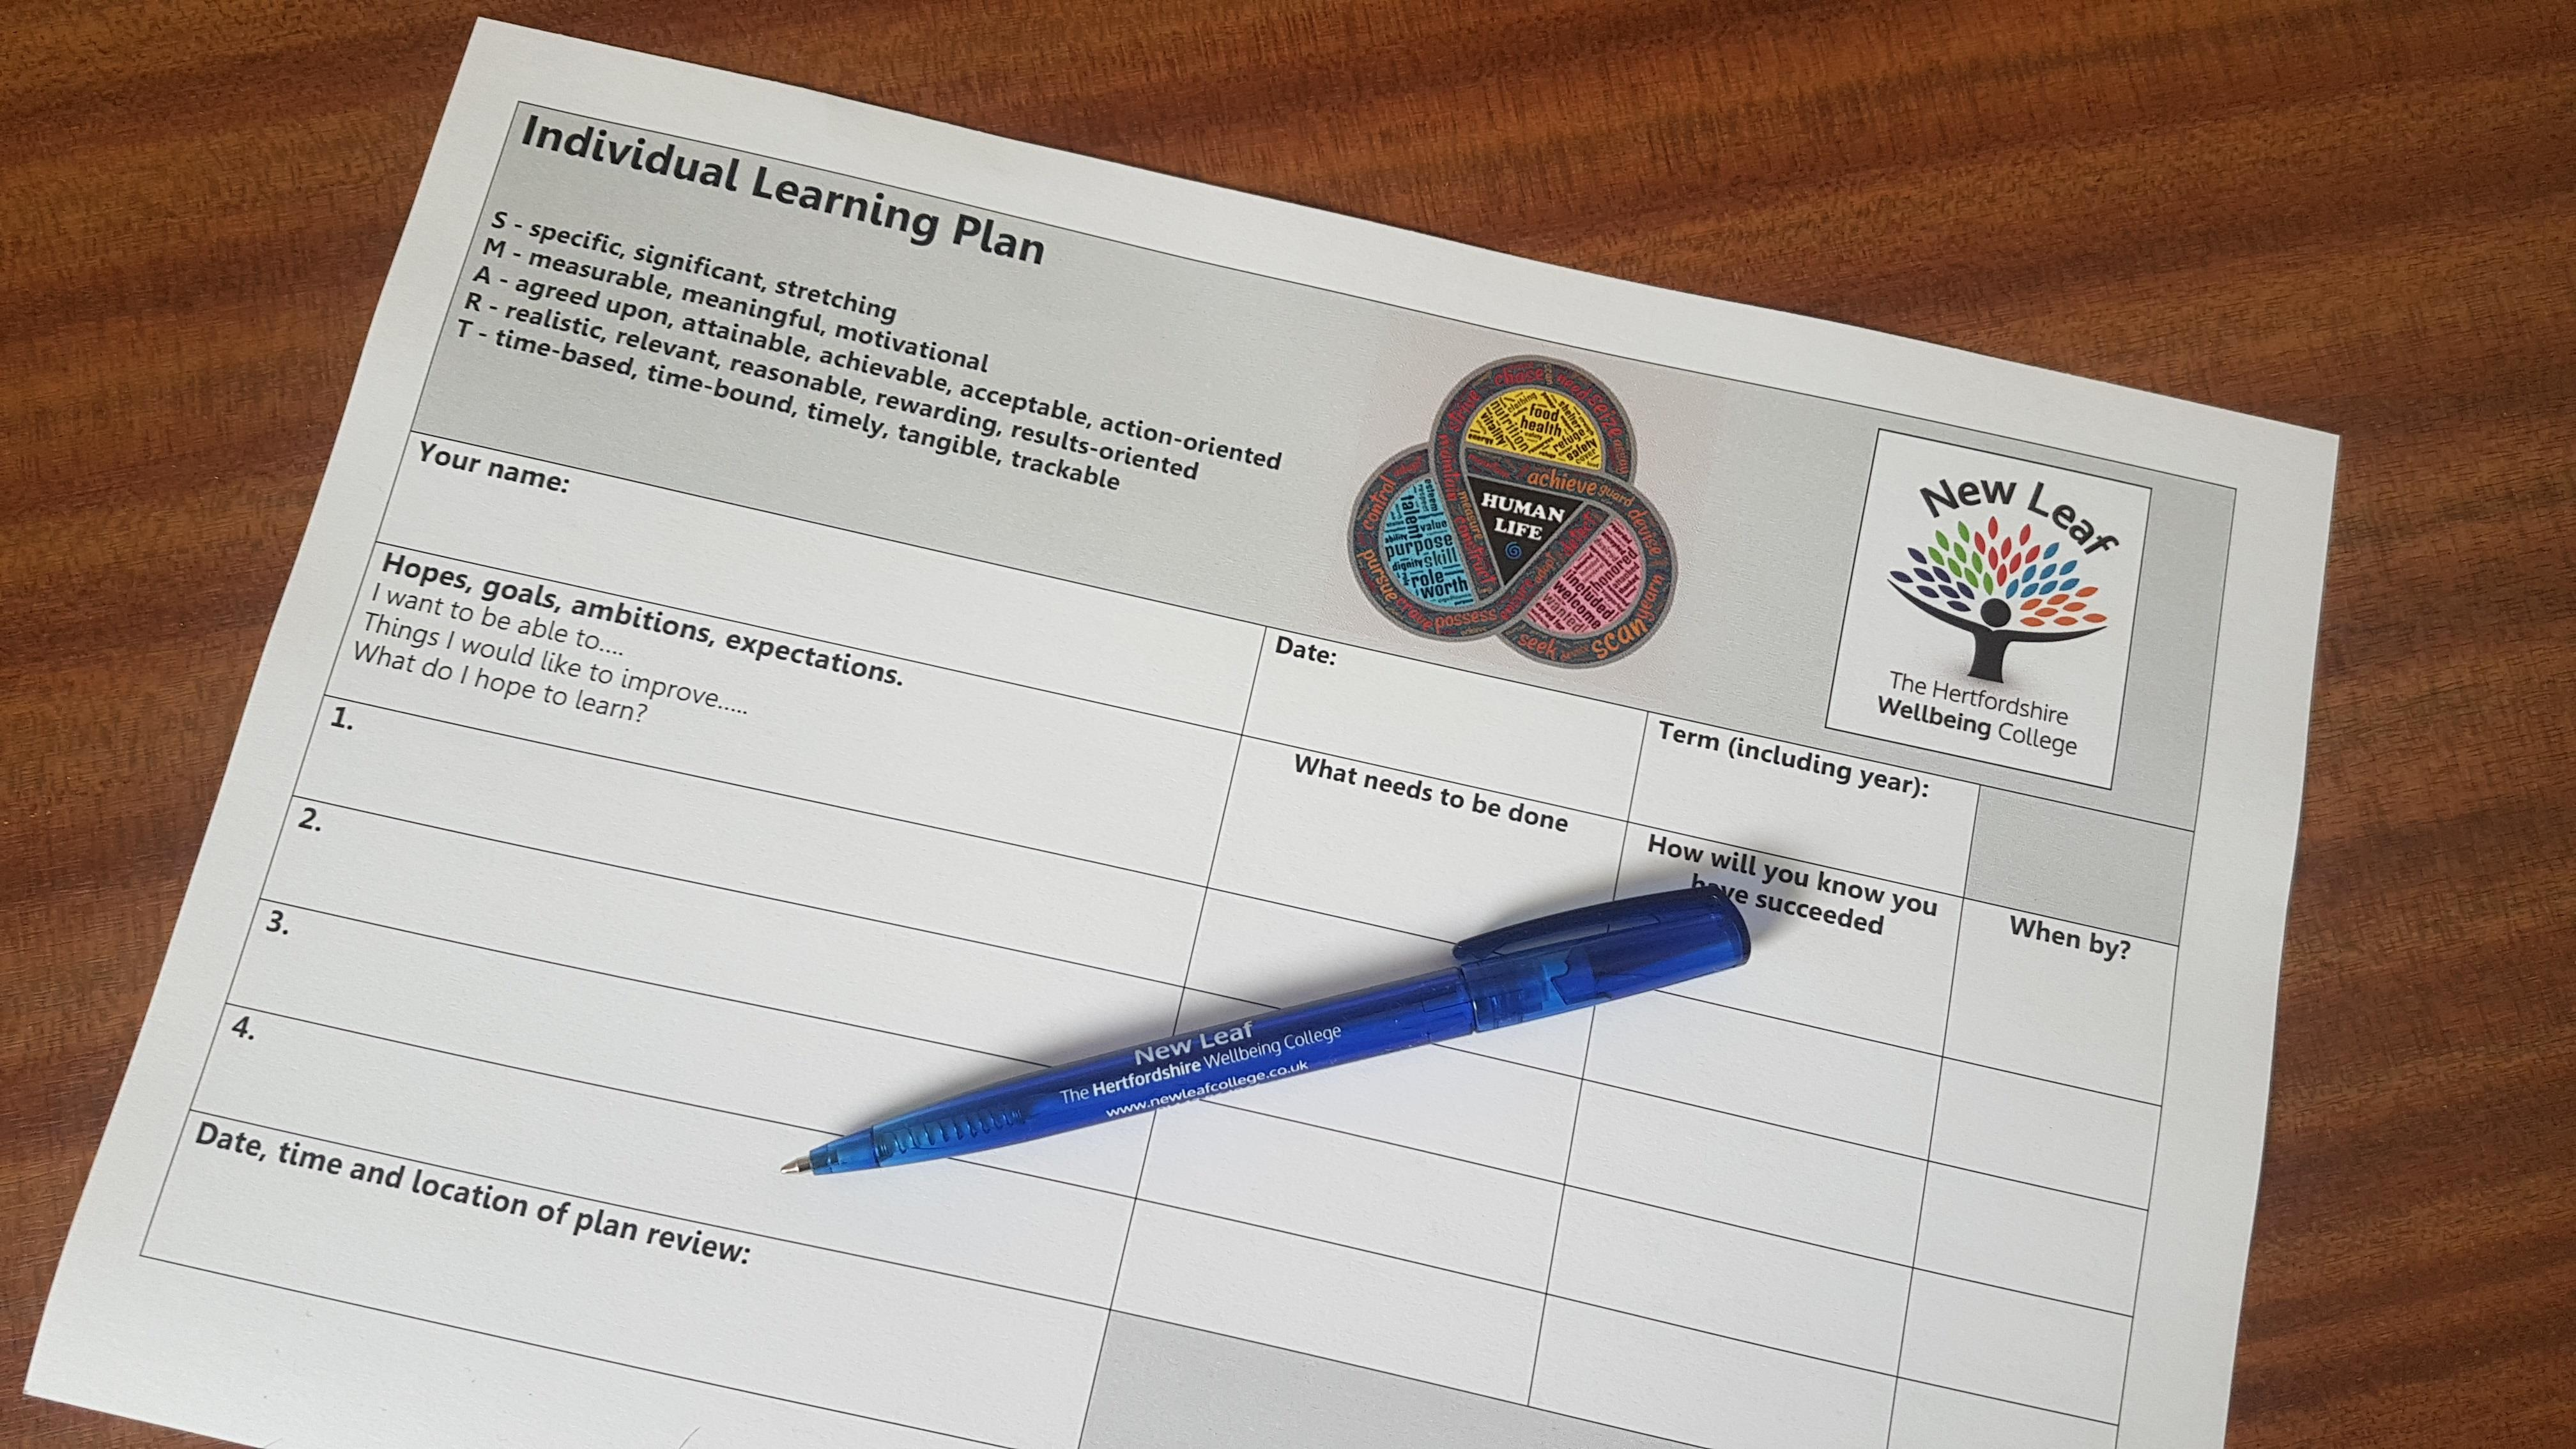 Individual learning plan